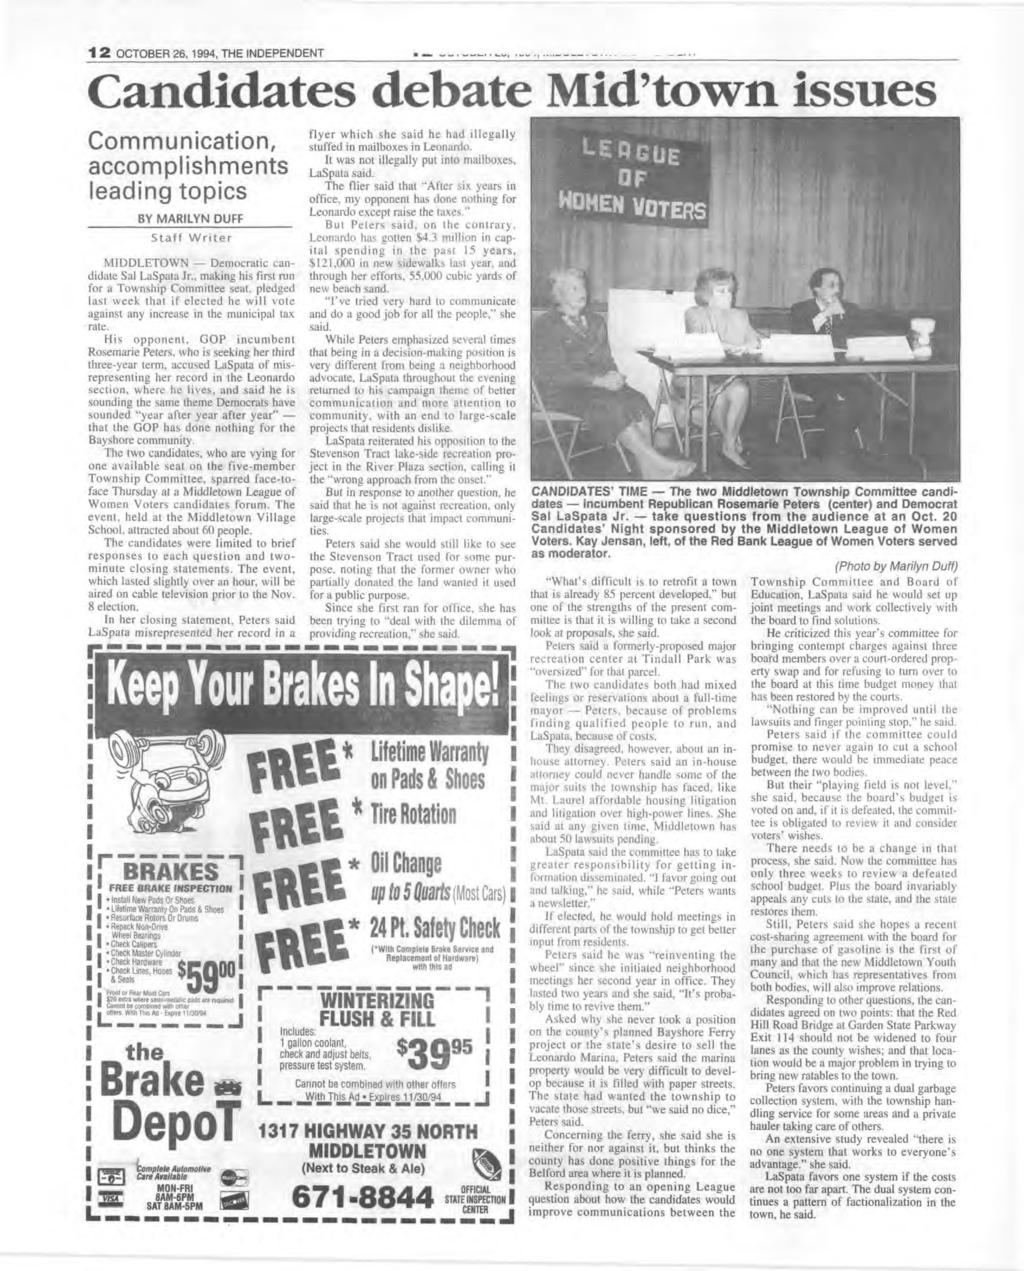 1 2 OCTOBER 26, 1994, THE NDEPENDENT Candidates debate Mid town issues C om m unication, accom plishm ents leading topics BY M ARLYN DUFF Staff W riter M D D L ET O W N Democratic candidate Sal